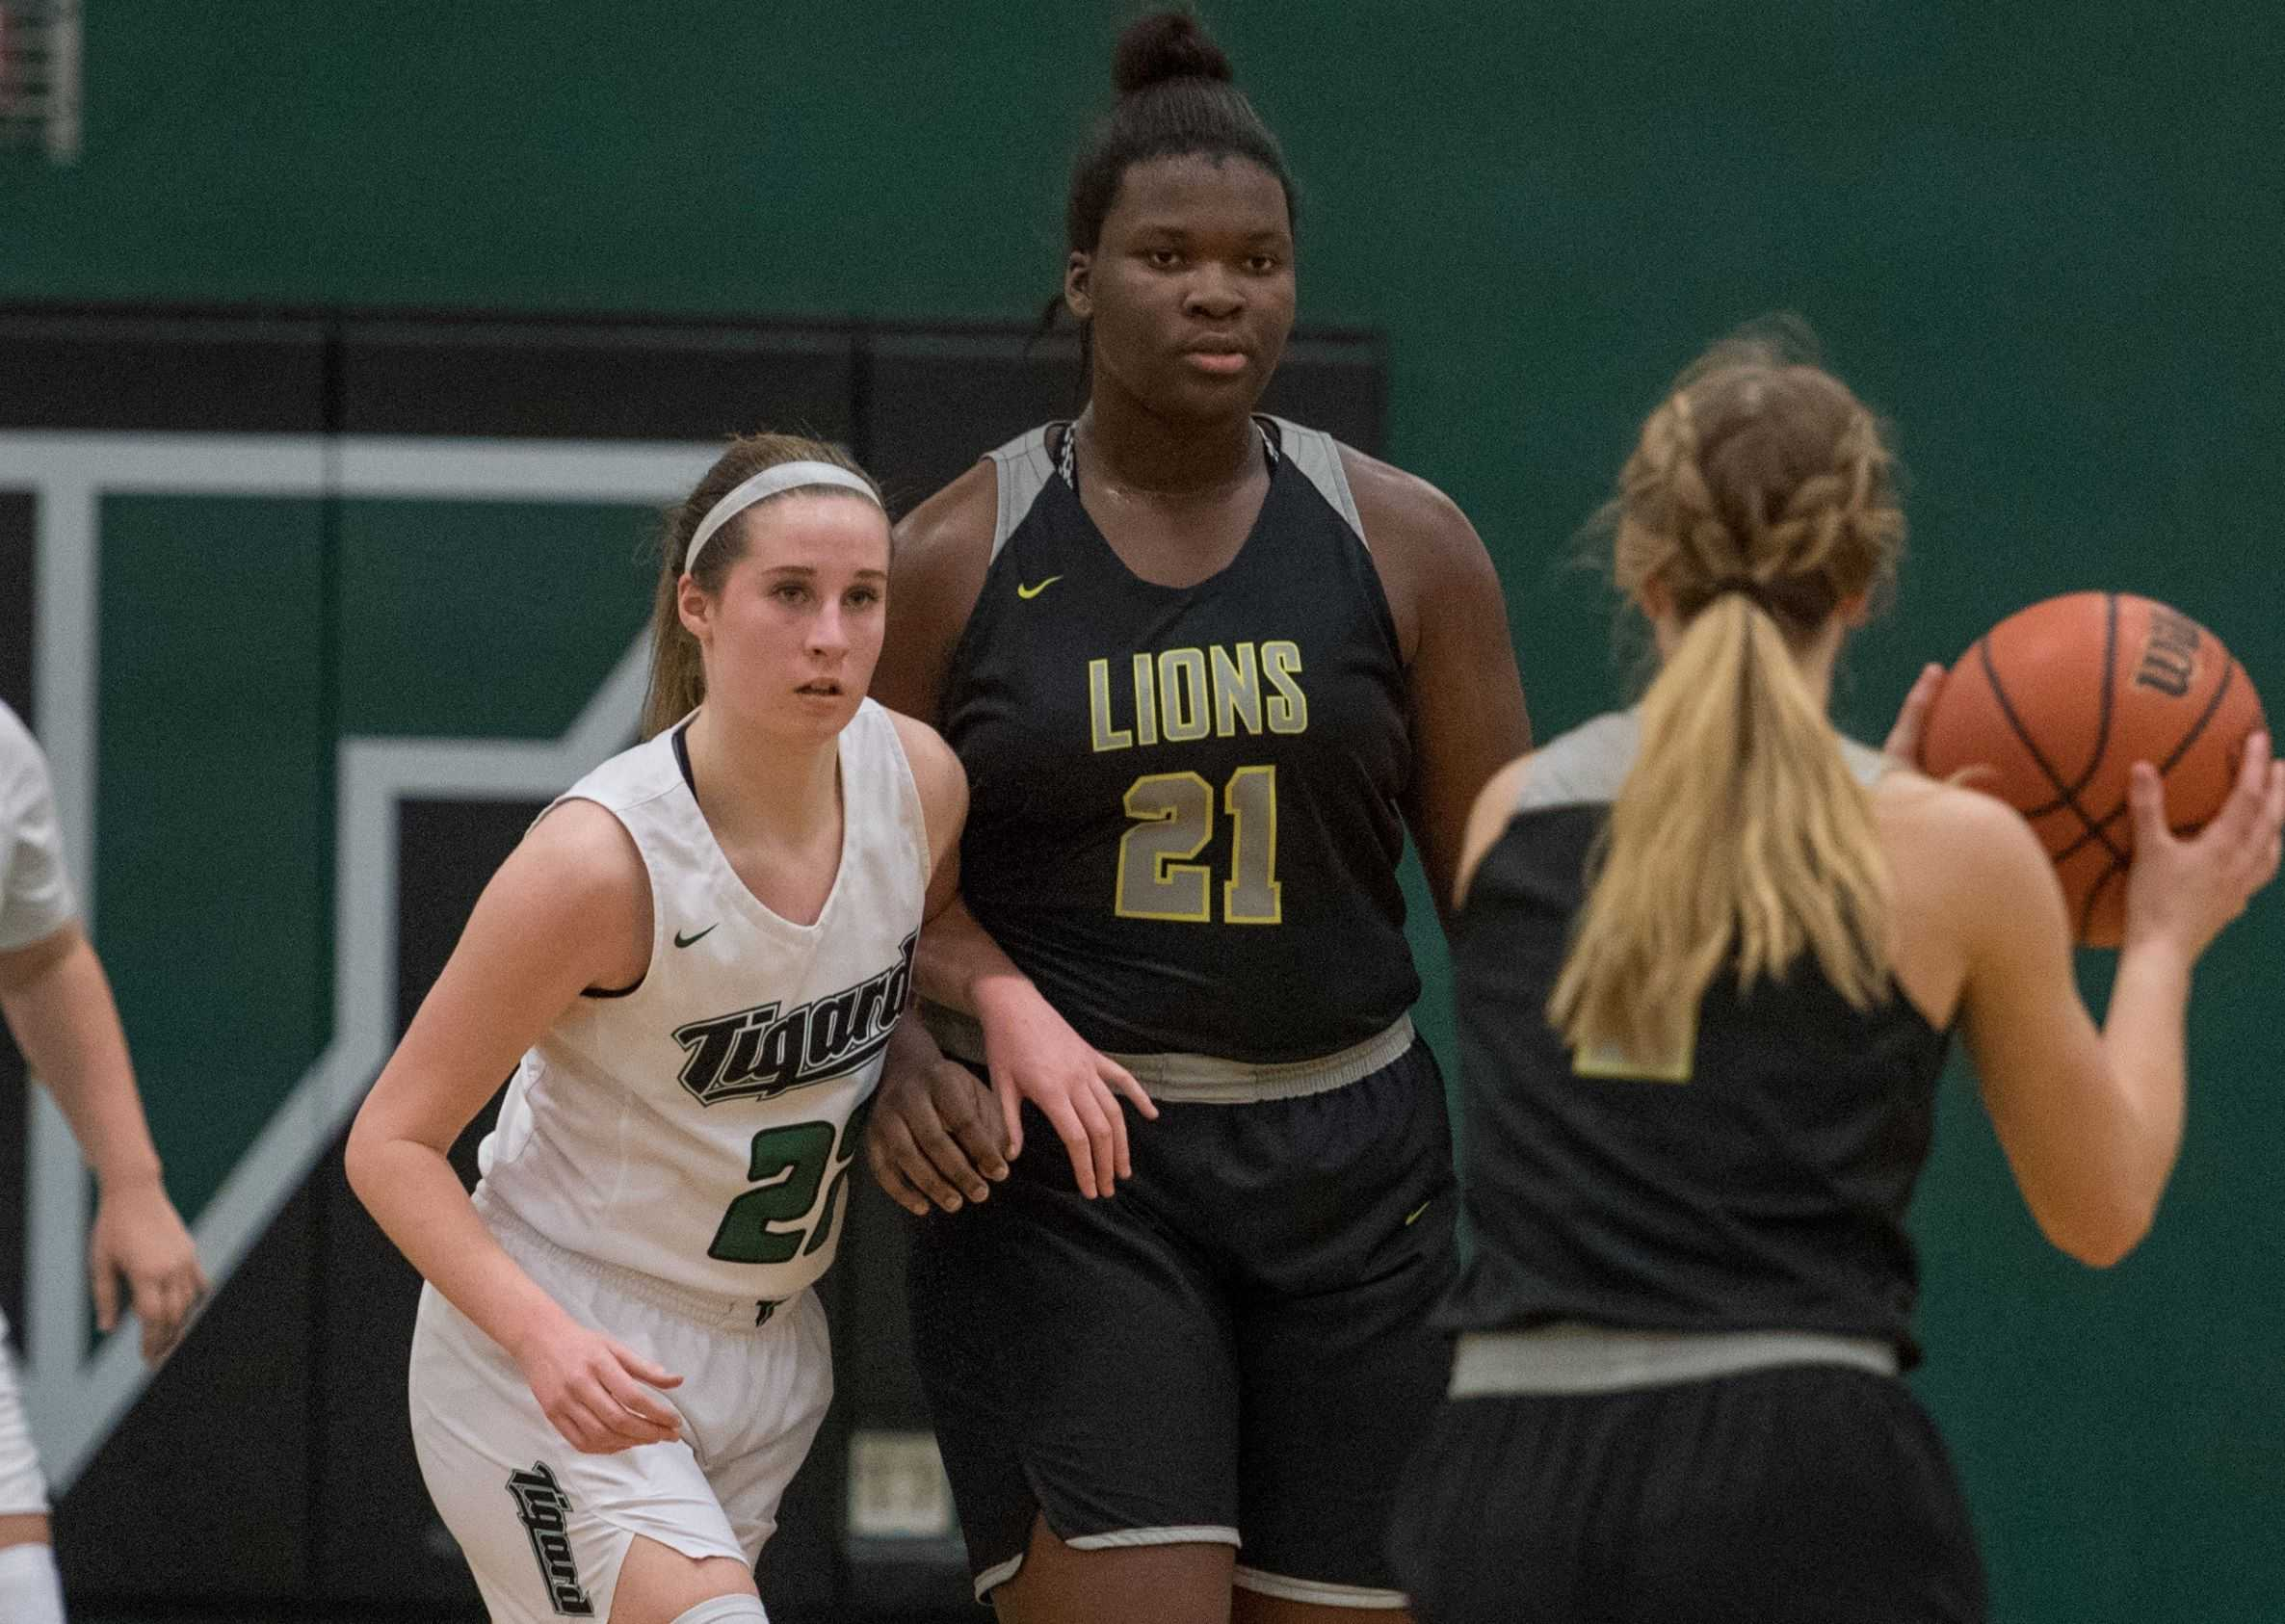 West Linn's Aaronette Vonleh (21) averaged 17.1 points to lead her team to a league title last season. (Photo by Ralph Greene)